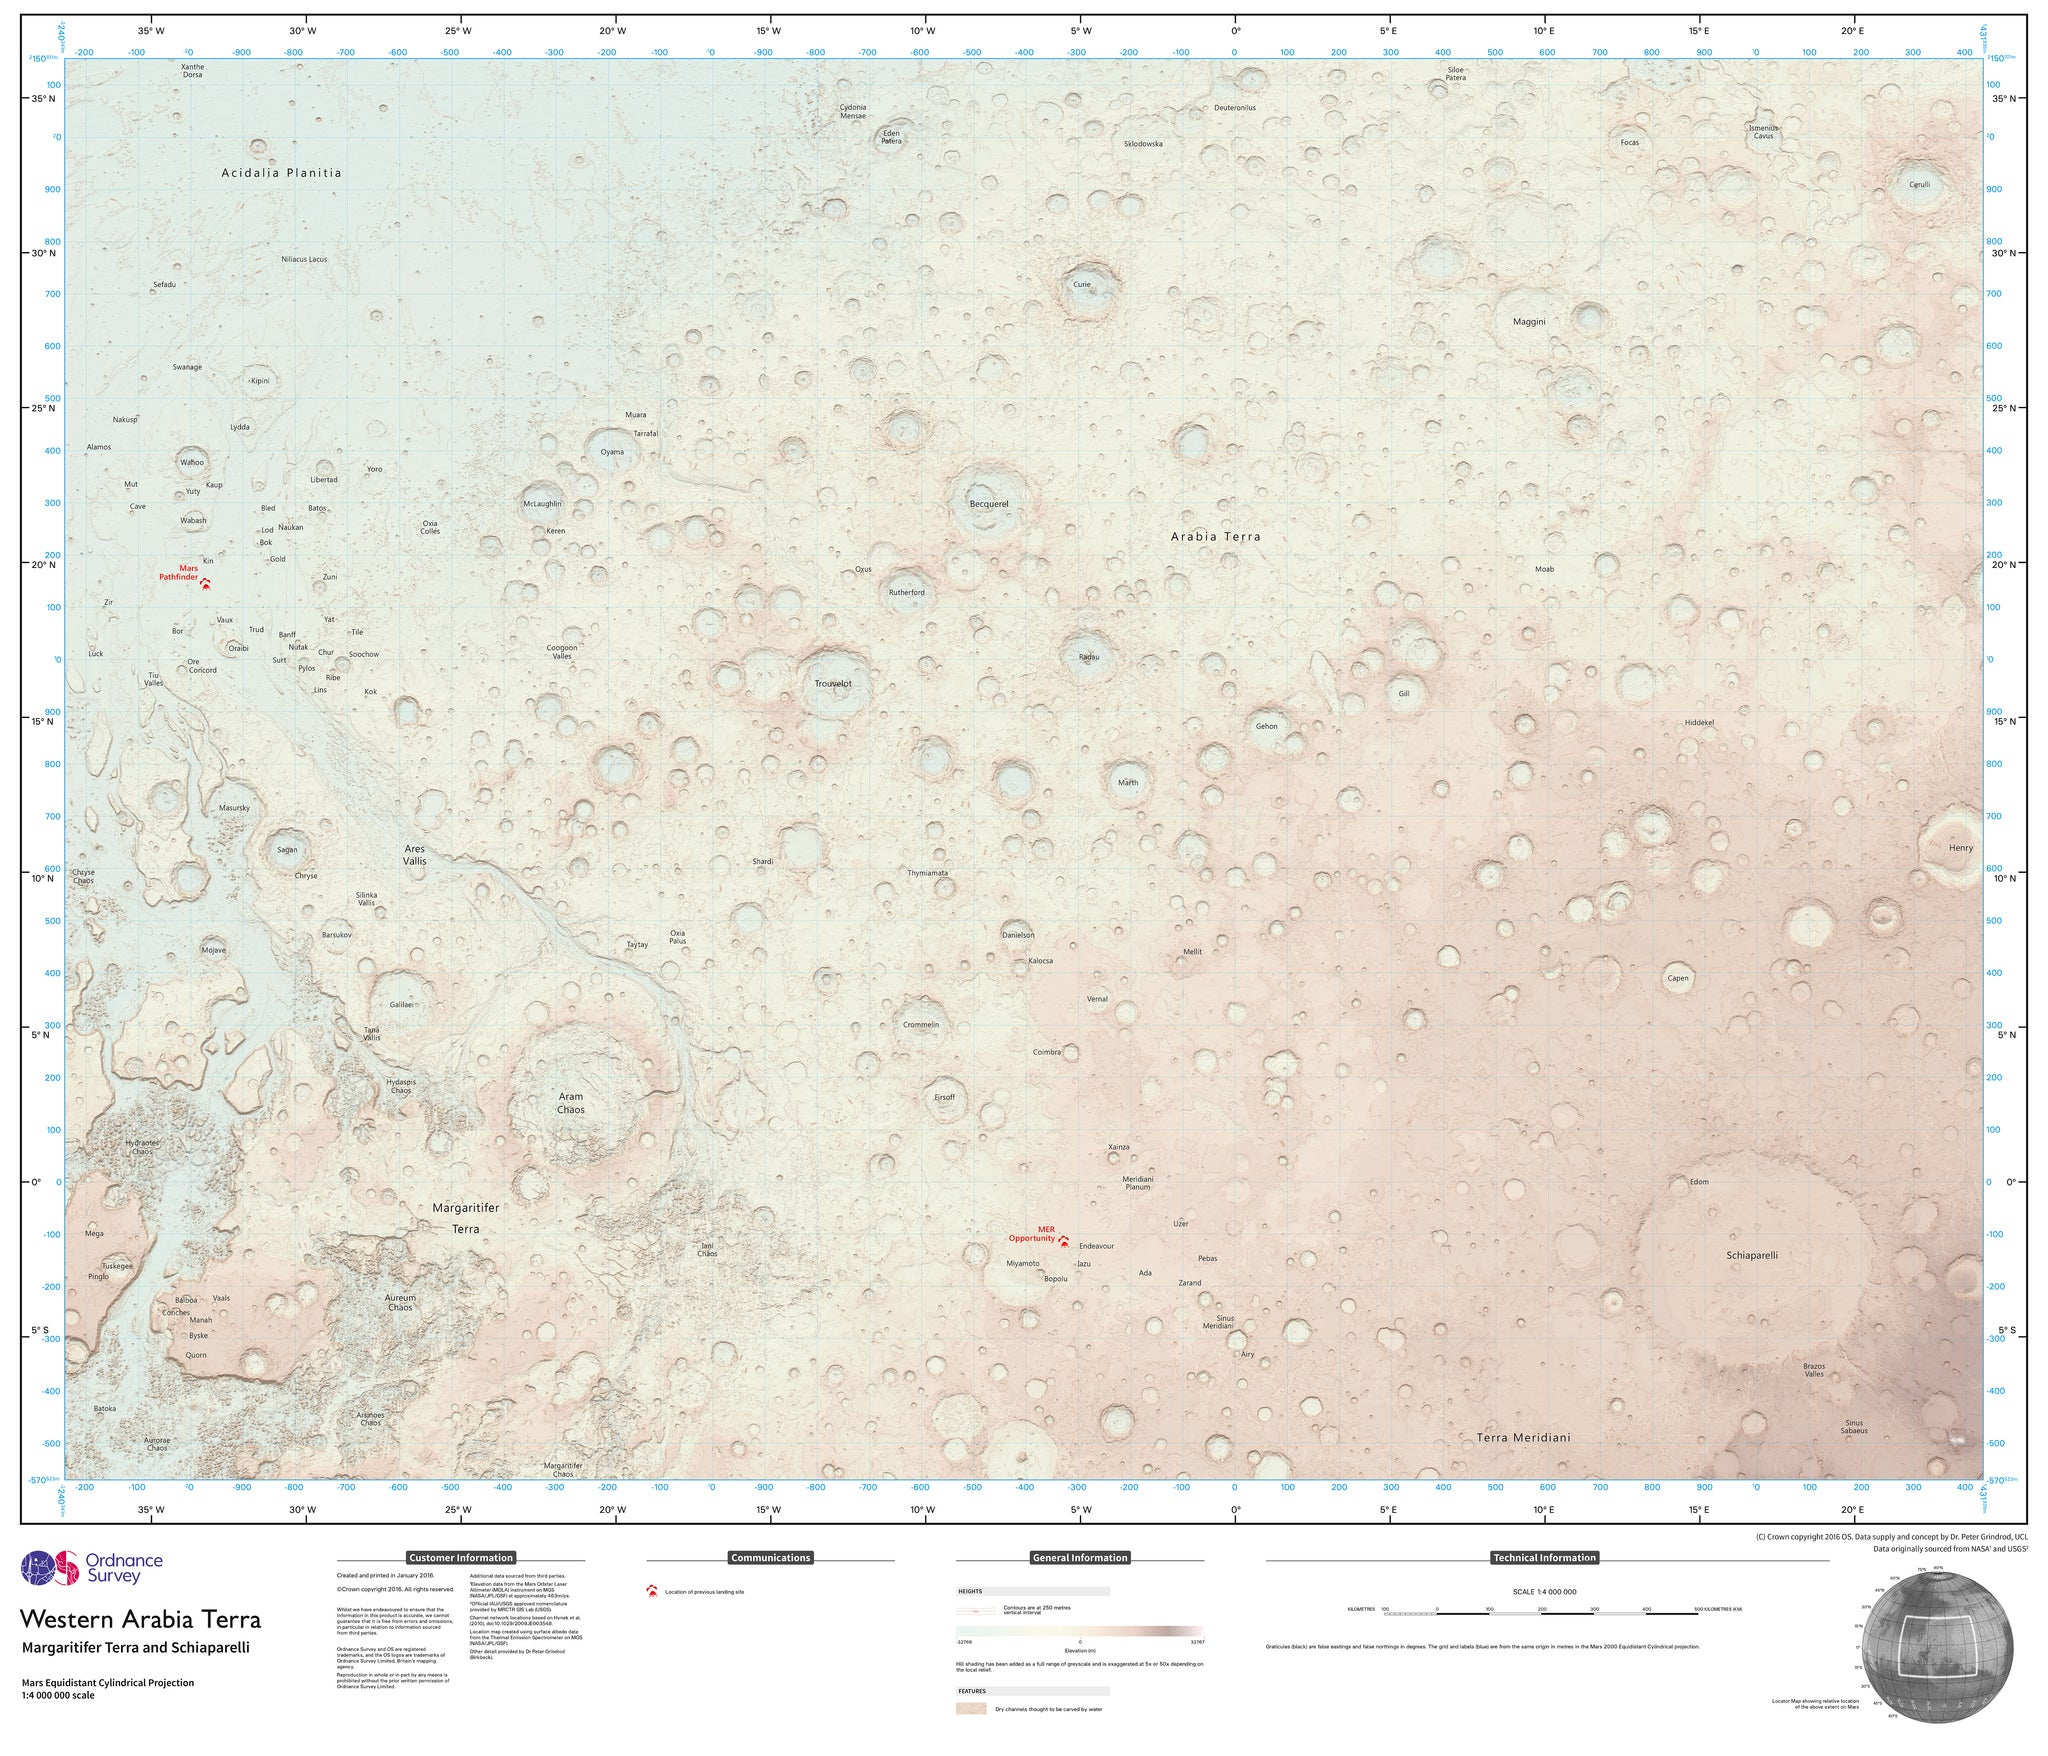 We Think These Martian Roadmaps Accidentally Revealed the Site of an Upcoming Mars Landing